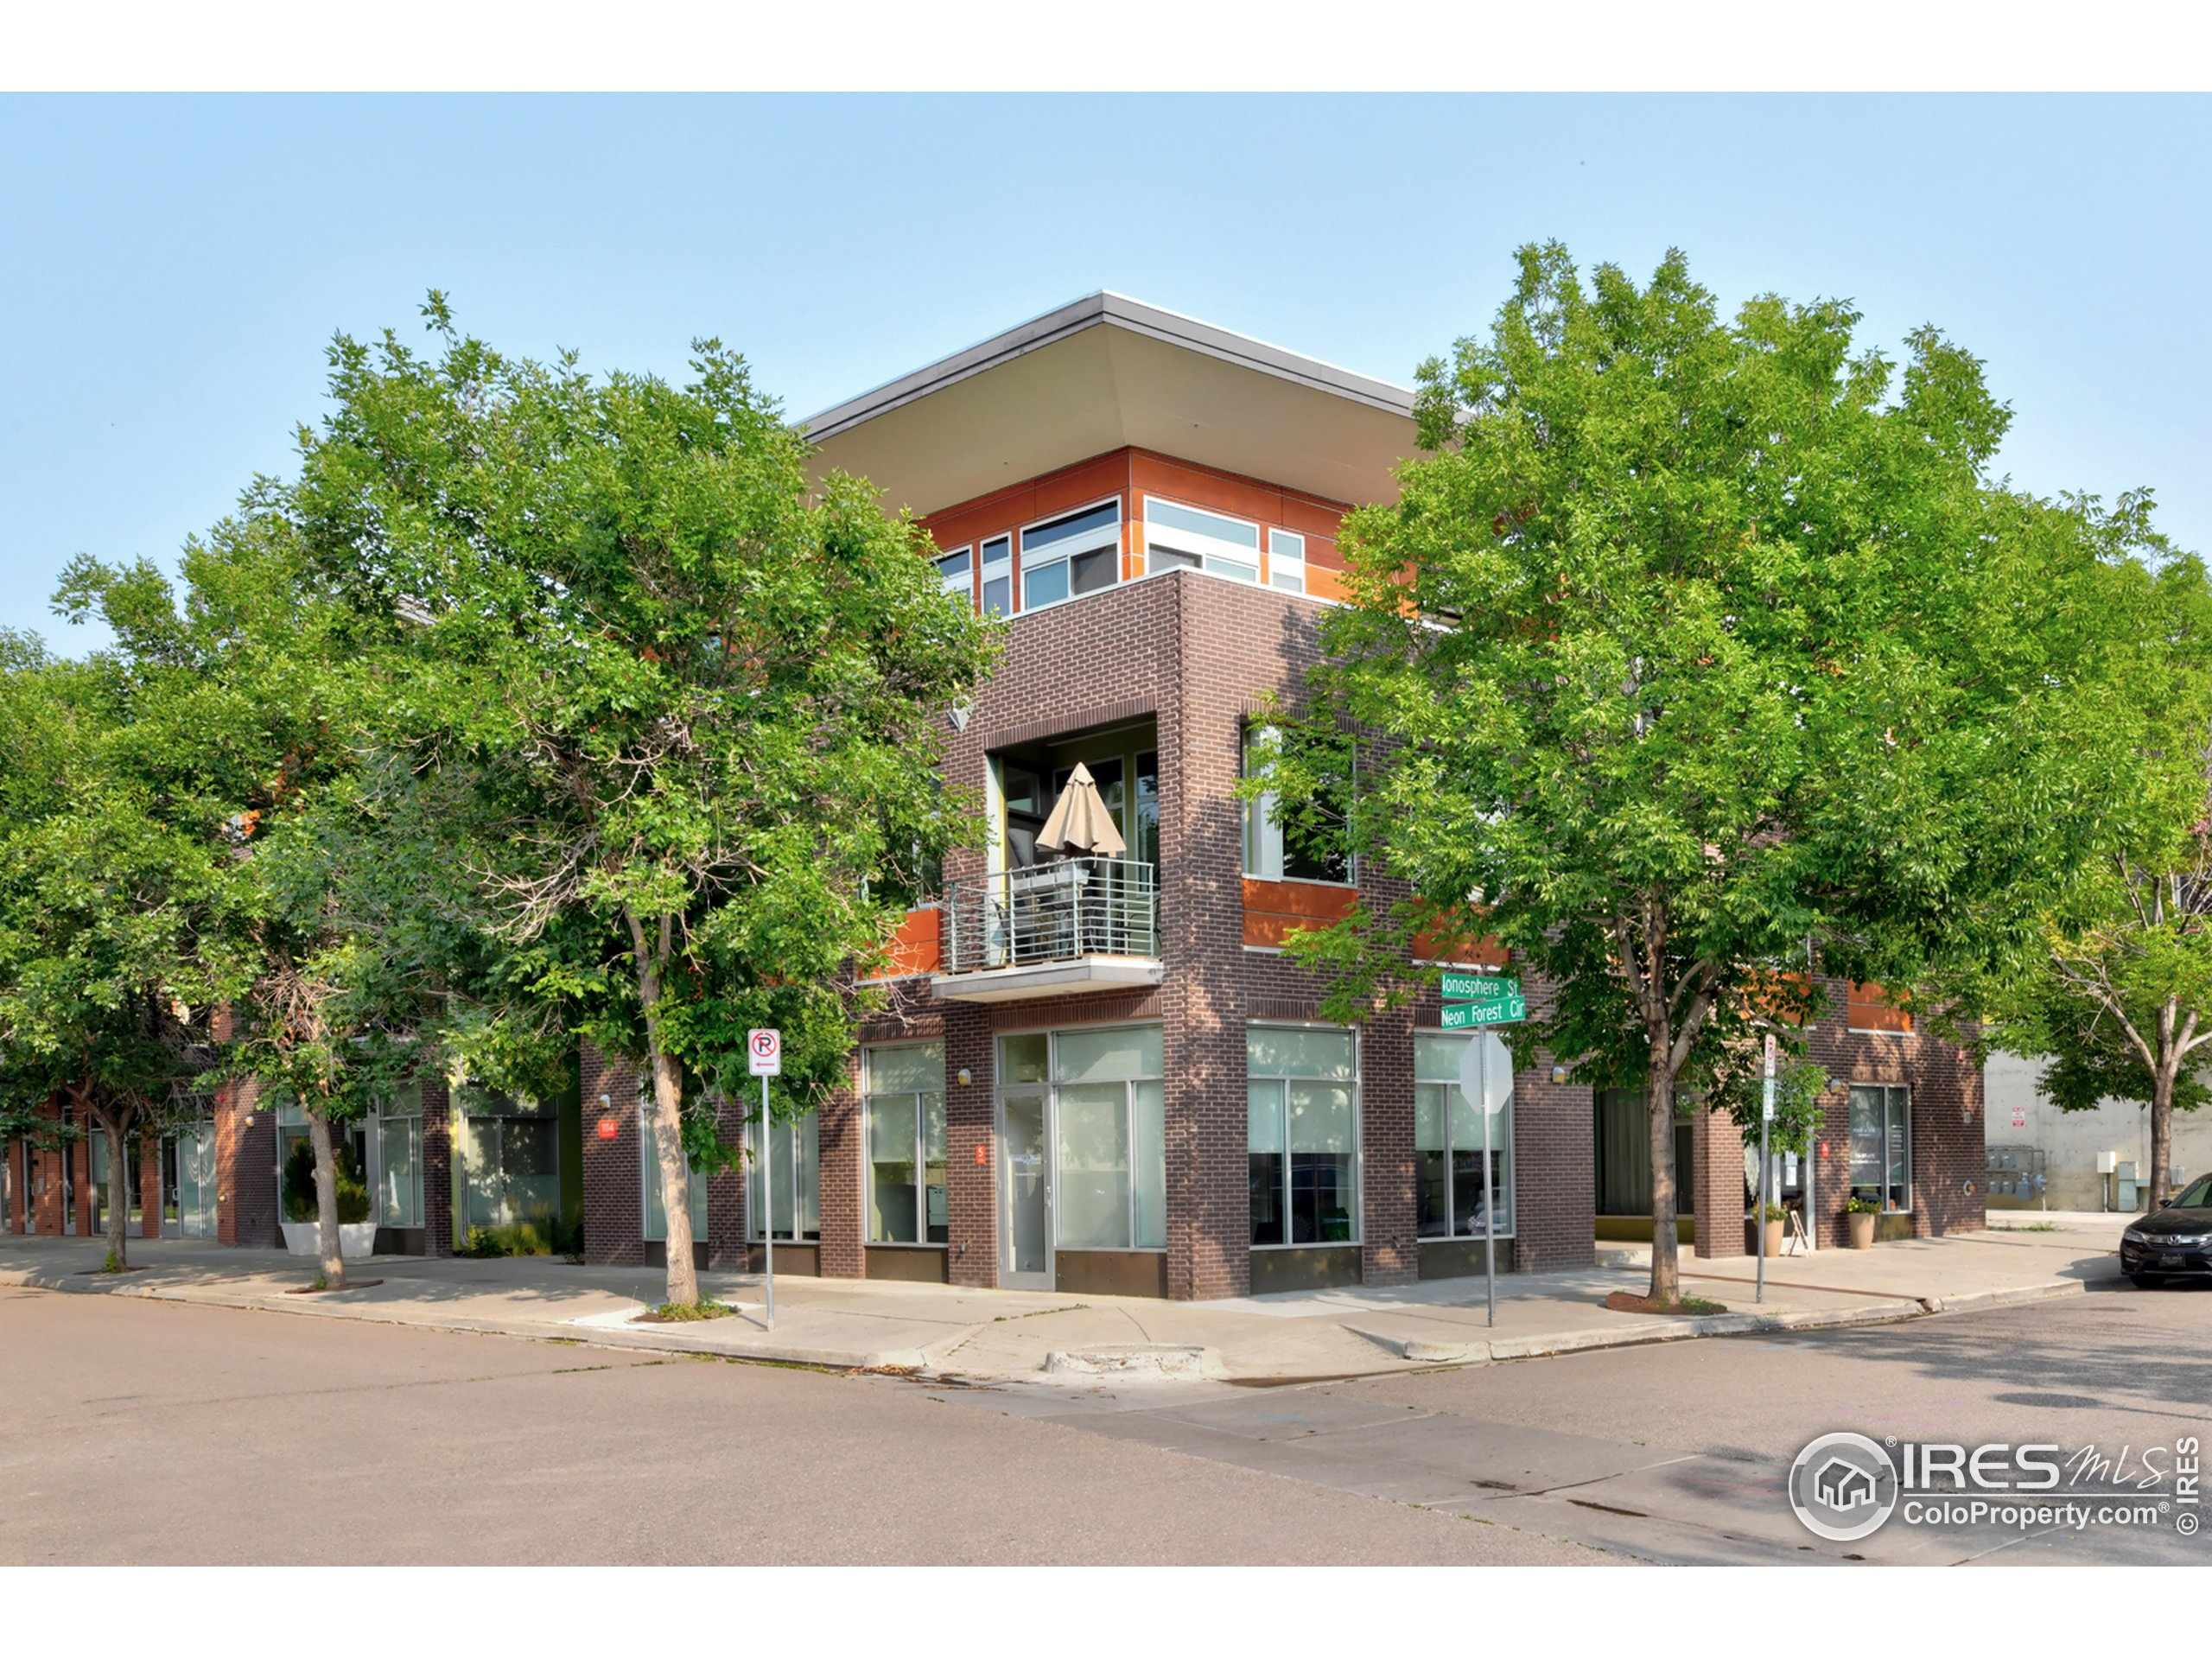 Architecturally Stunning & Impeccably maintained loft